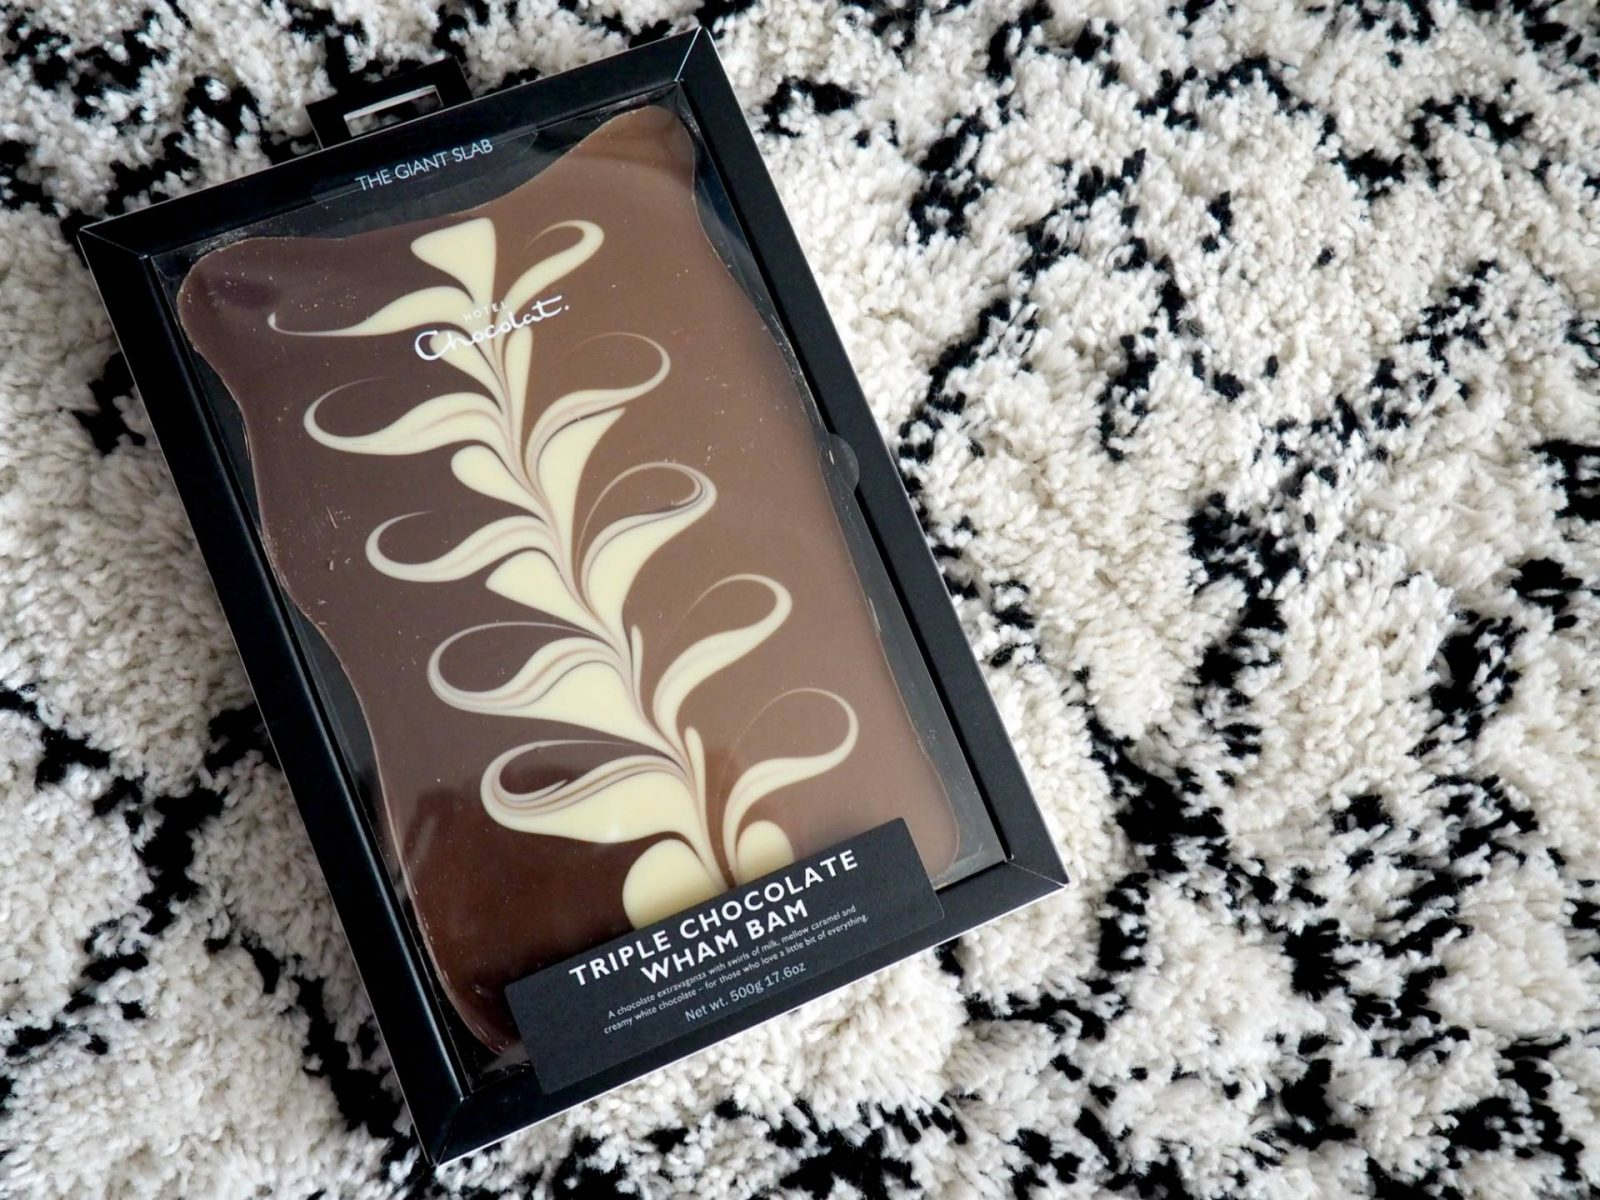 Merry Giftmas! #1 WIN a giant Hotel Chocolat Triple Chocolate Wham Bam bar